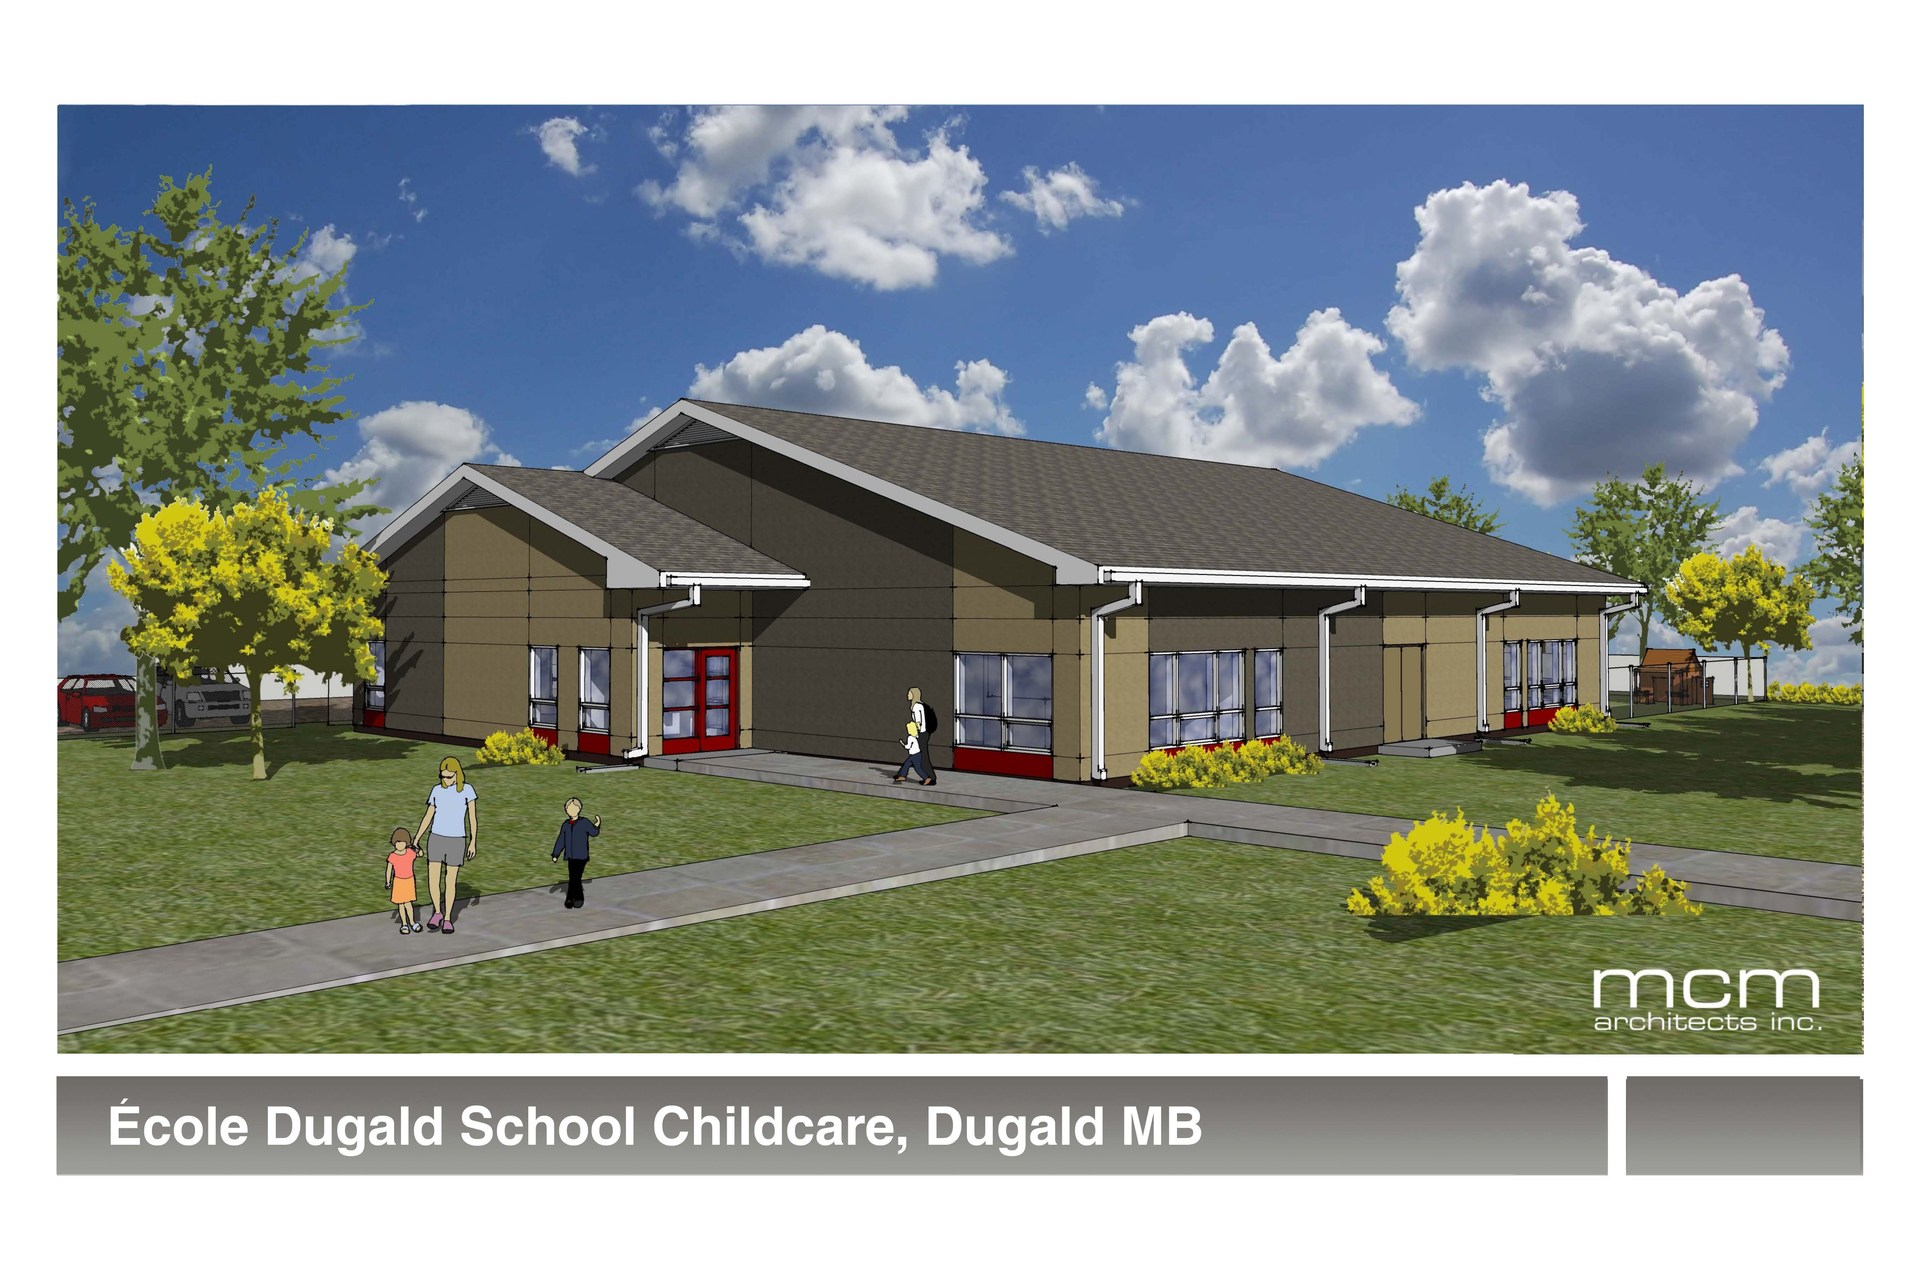 Full colour architect drawing of new daycare building with grass, trees and people walking on the sidewalks.